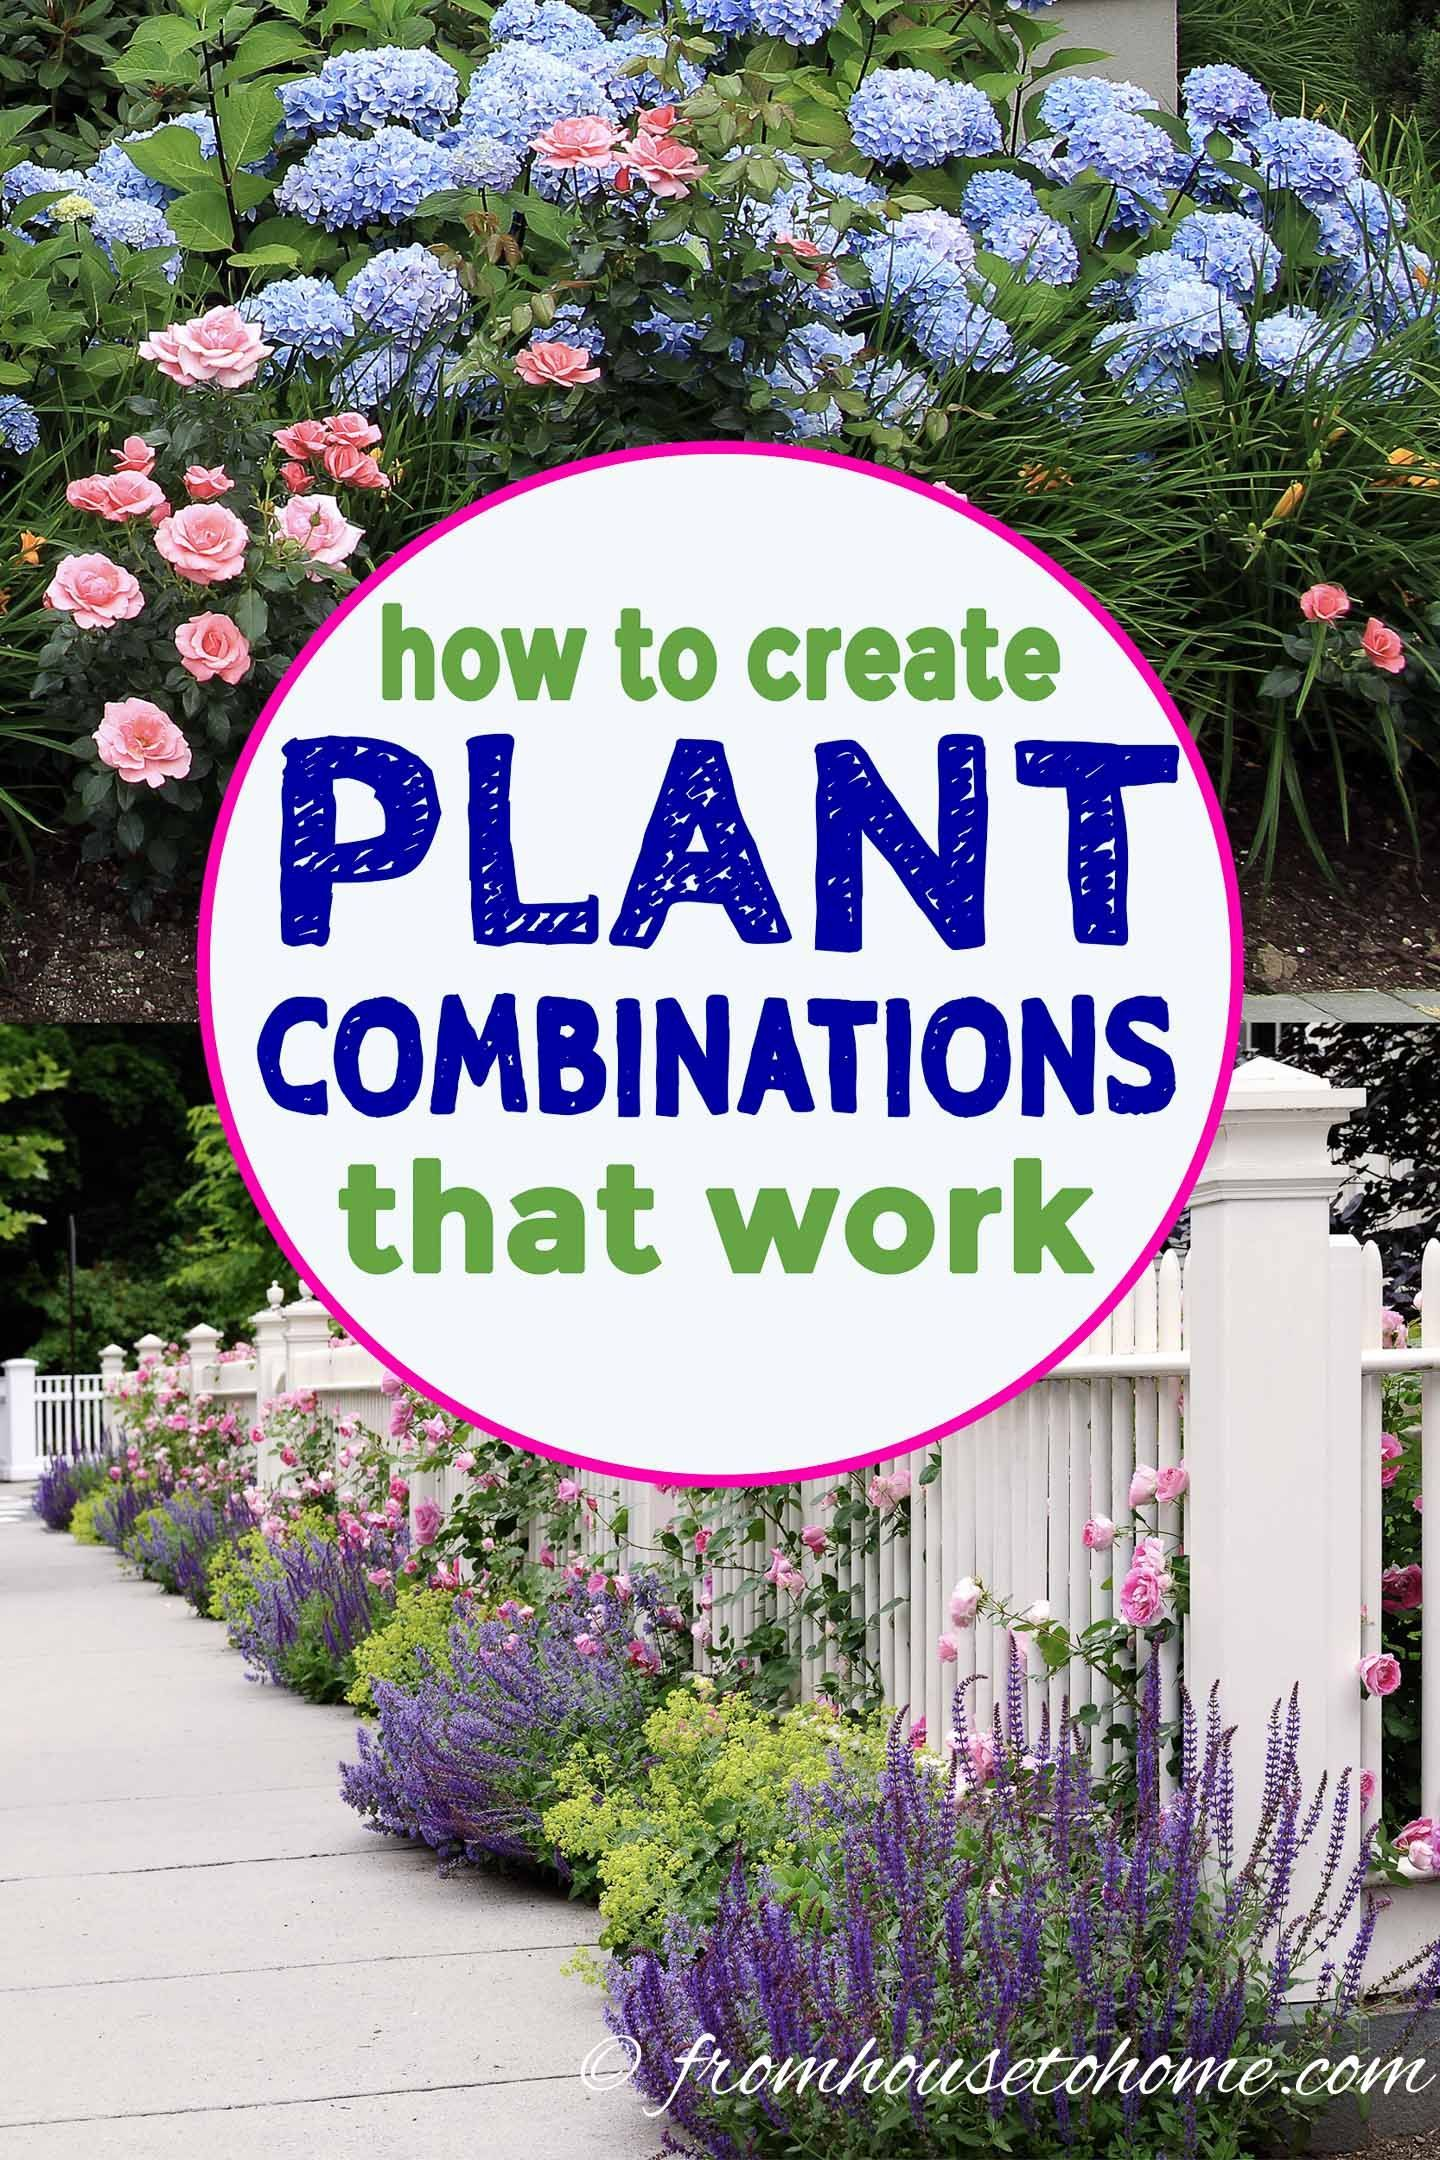 10 Tips For Creating Plant Combinations That Work - Gardening @ From House To Home